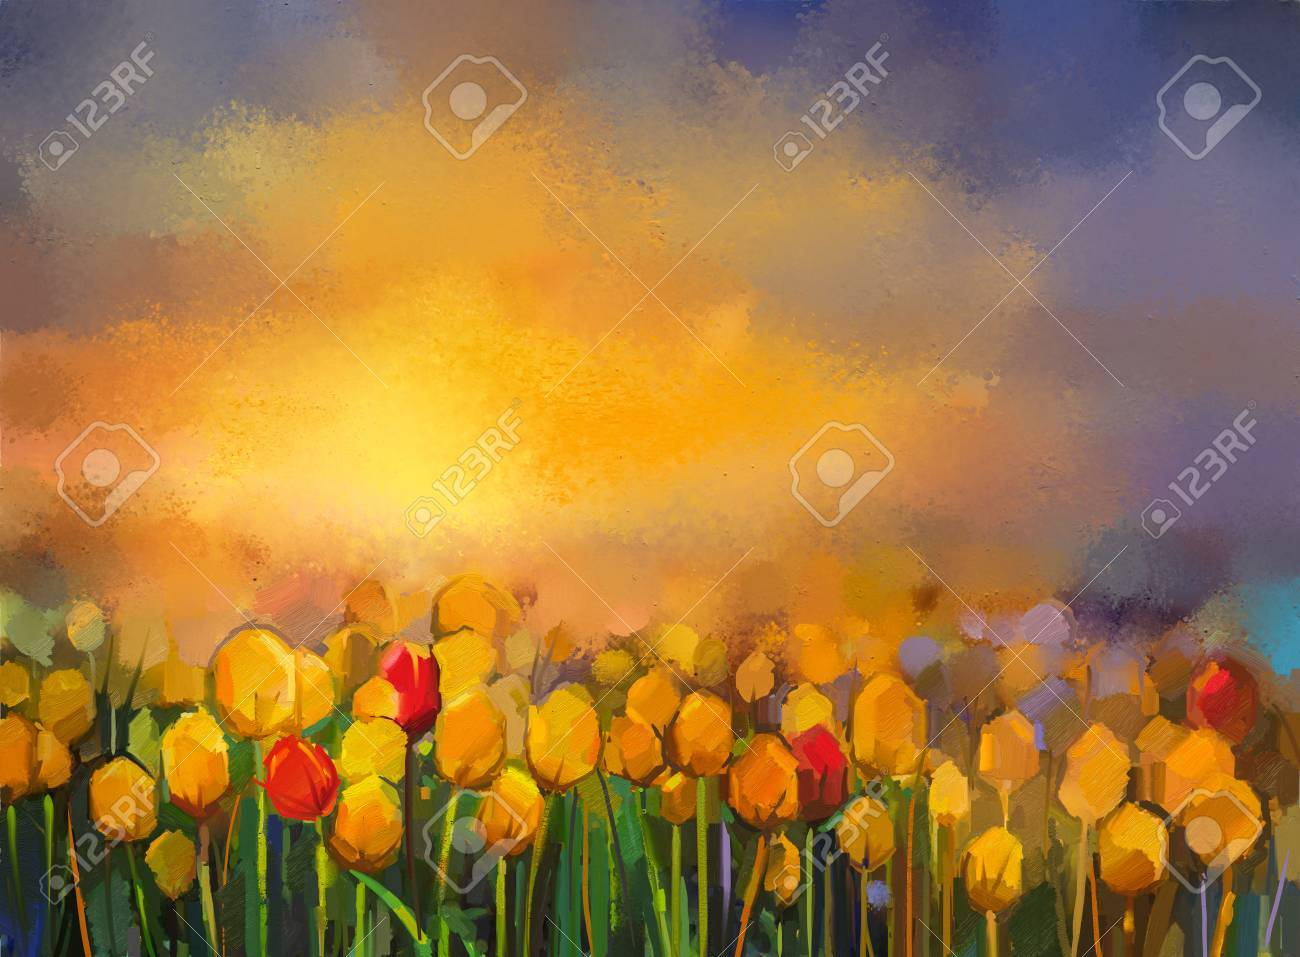 Oil Painting Yellow And Red Tulips Flowers Field Landscape